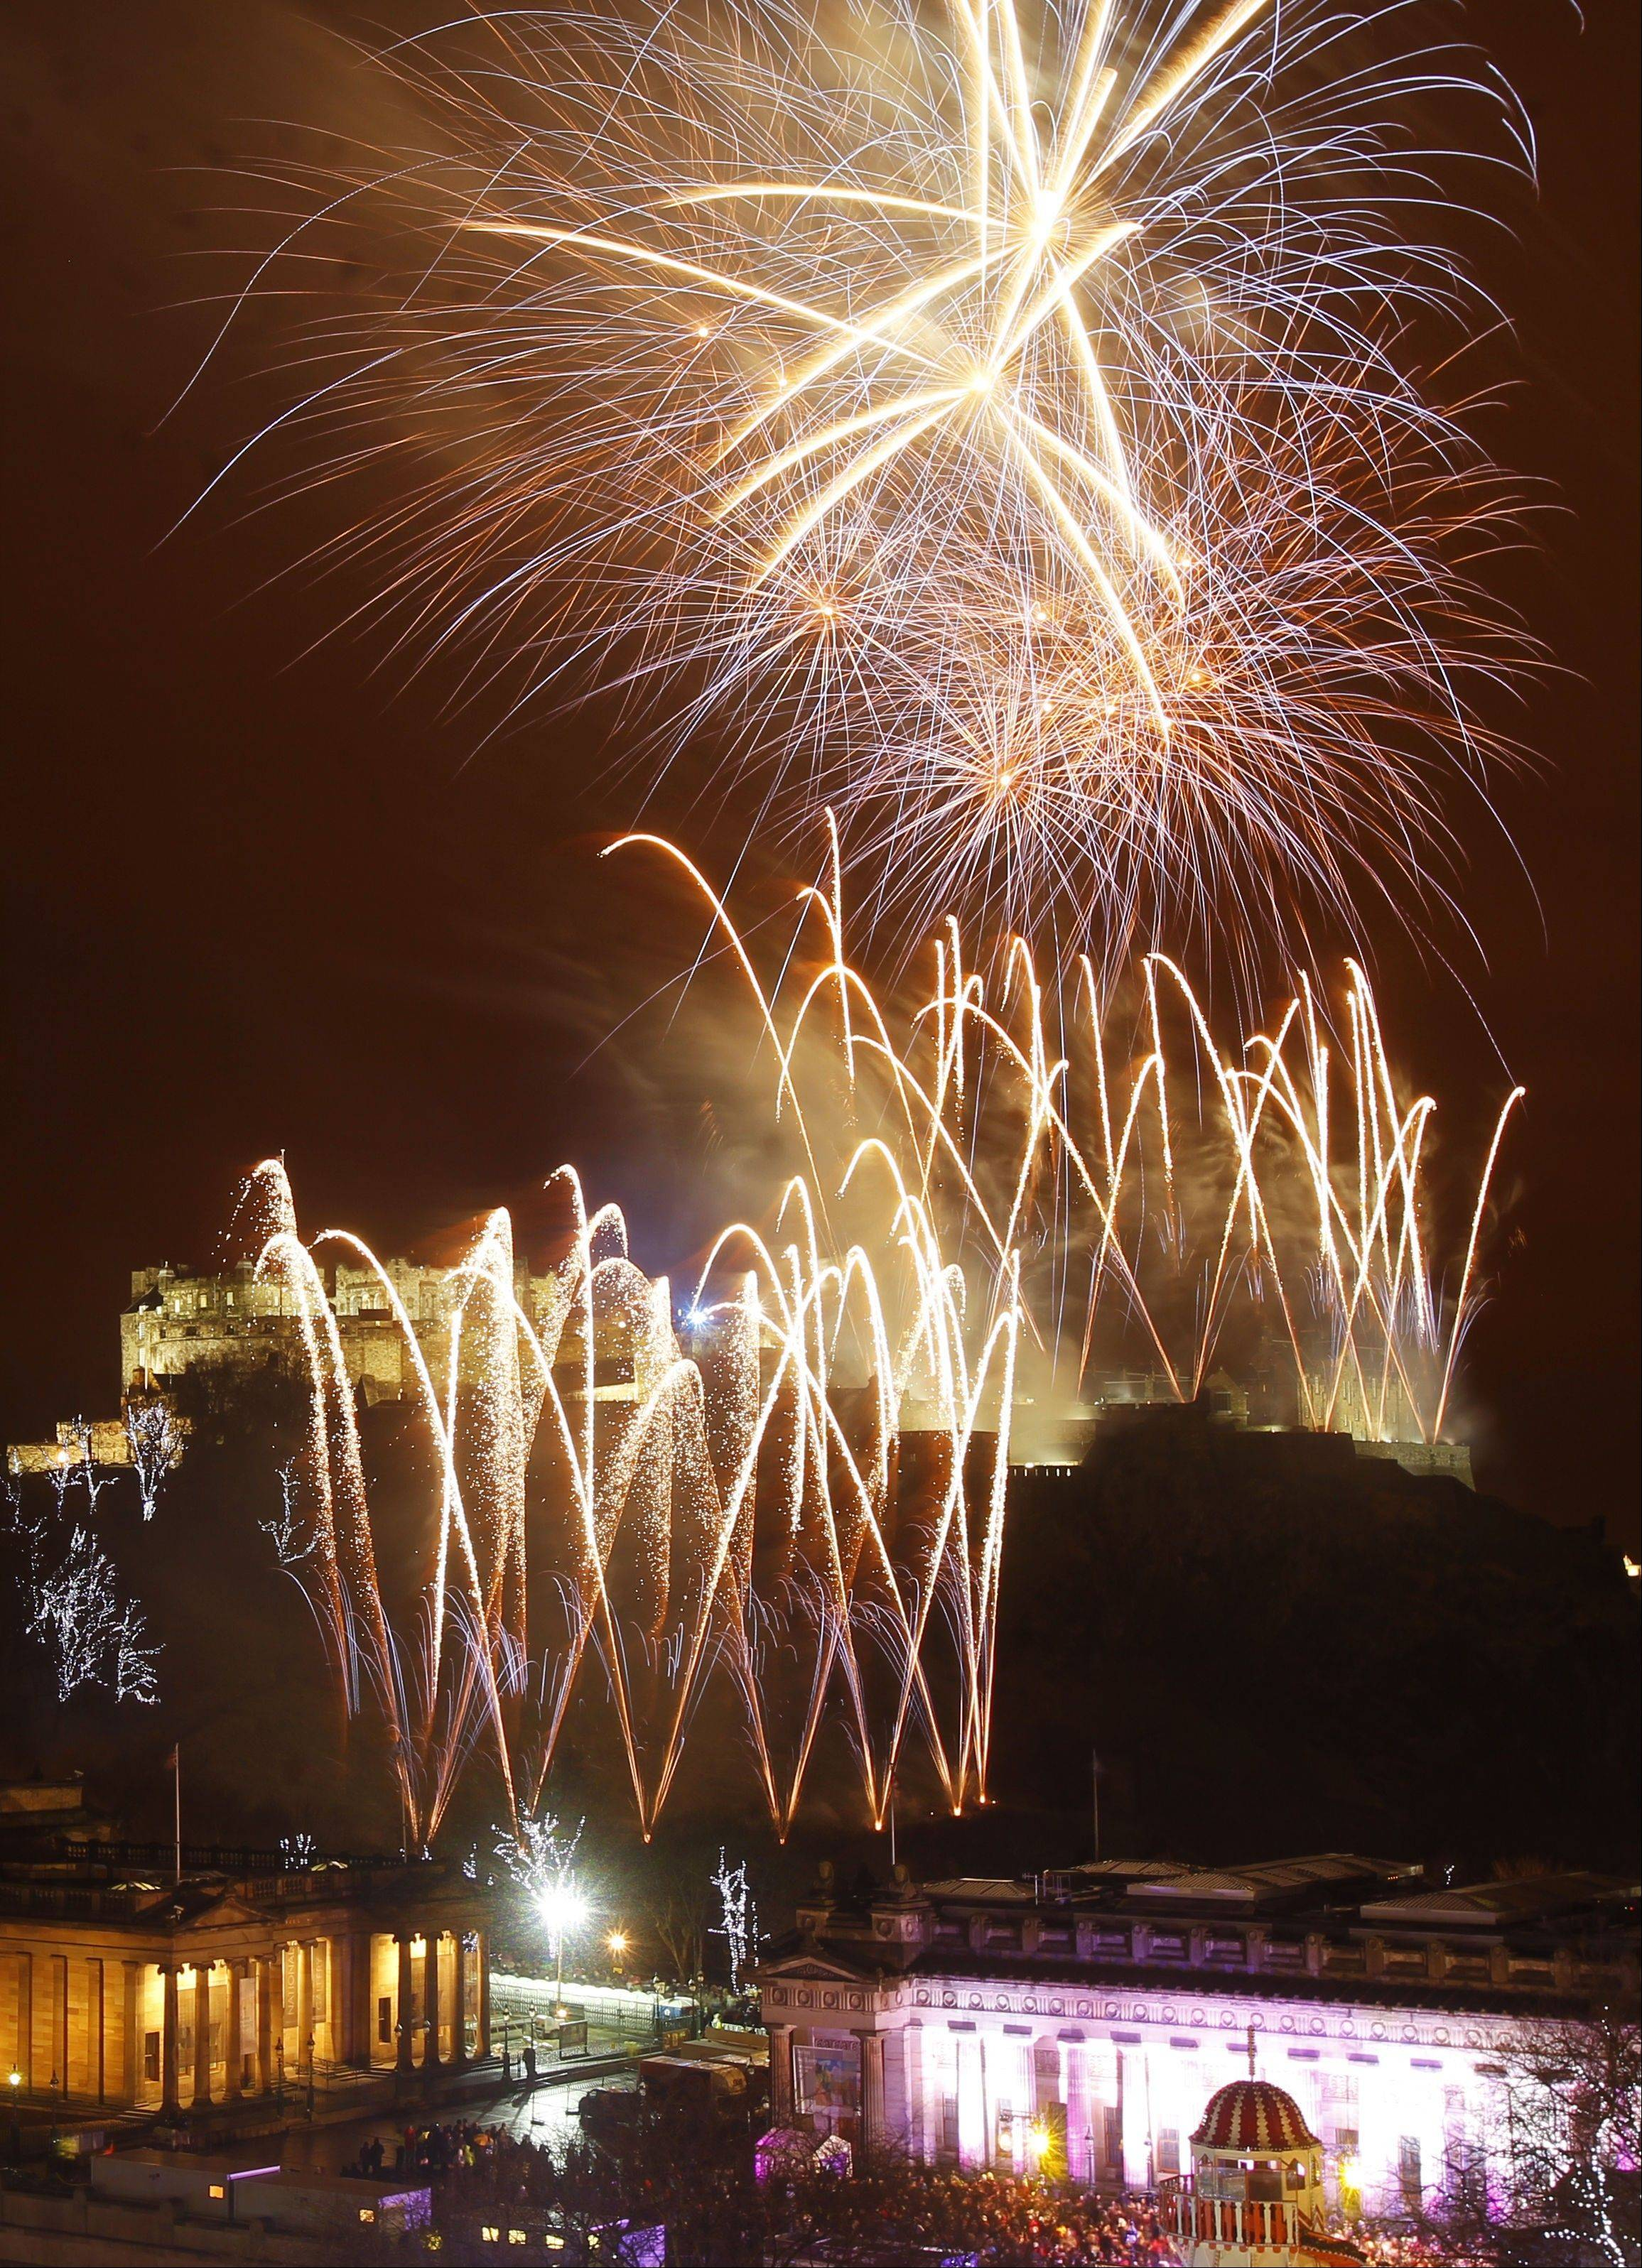 Fireworks go off over Edinburgh Castle, Scotland, as part of the New Year Hogmanay celebrations Monday Dec. 31, 2012.